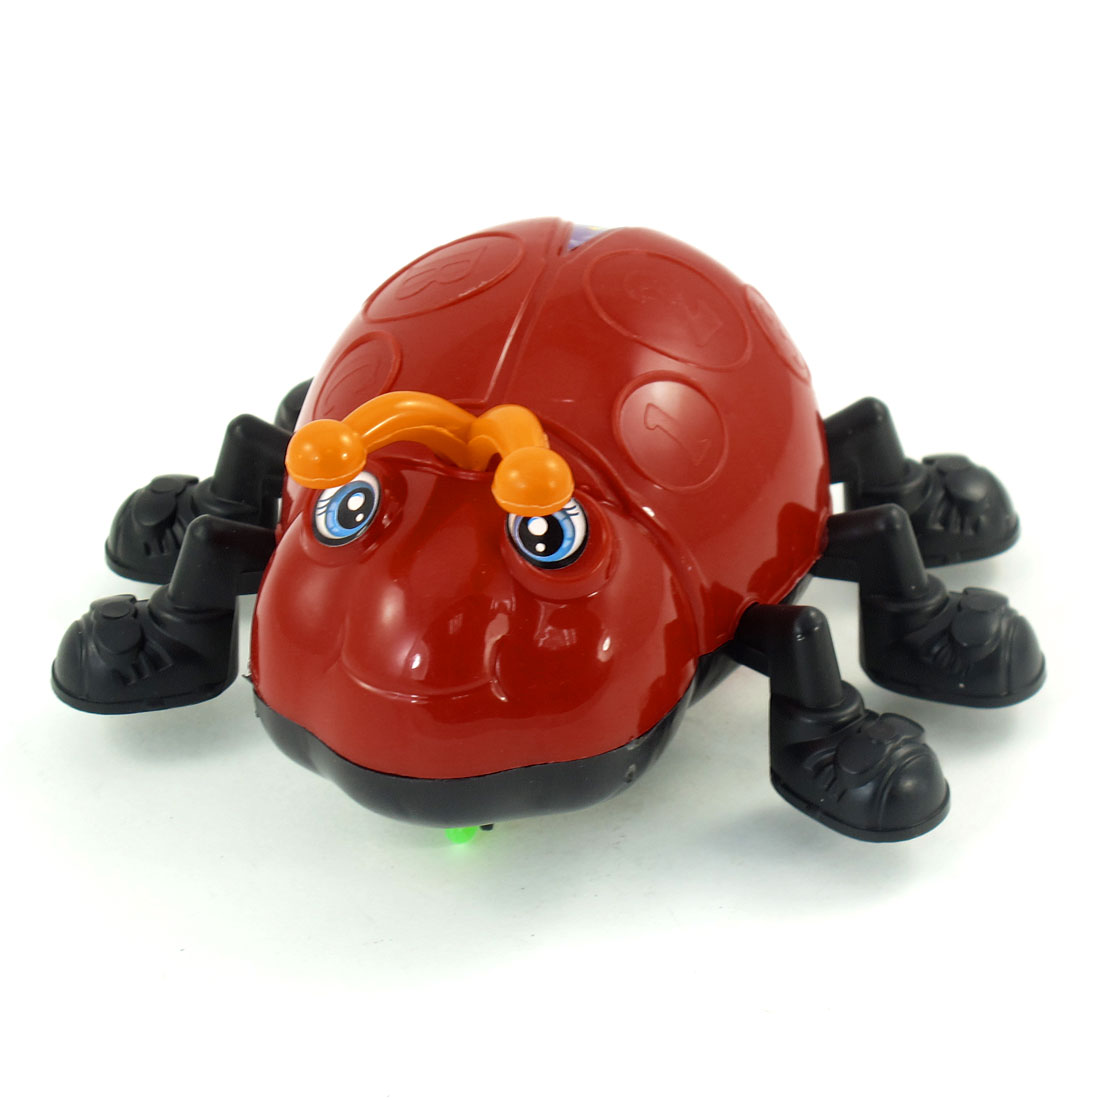 Red Hard Plastic Two Antenna Bug Design Runs Wheels Pull String Toy for Kids